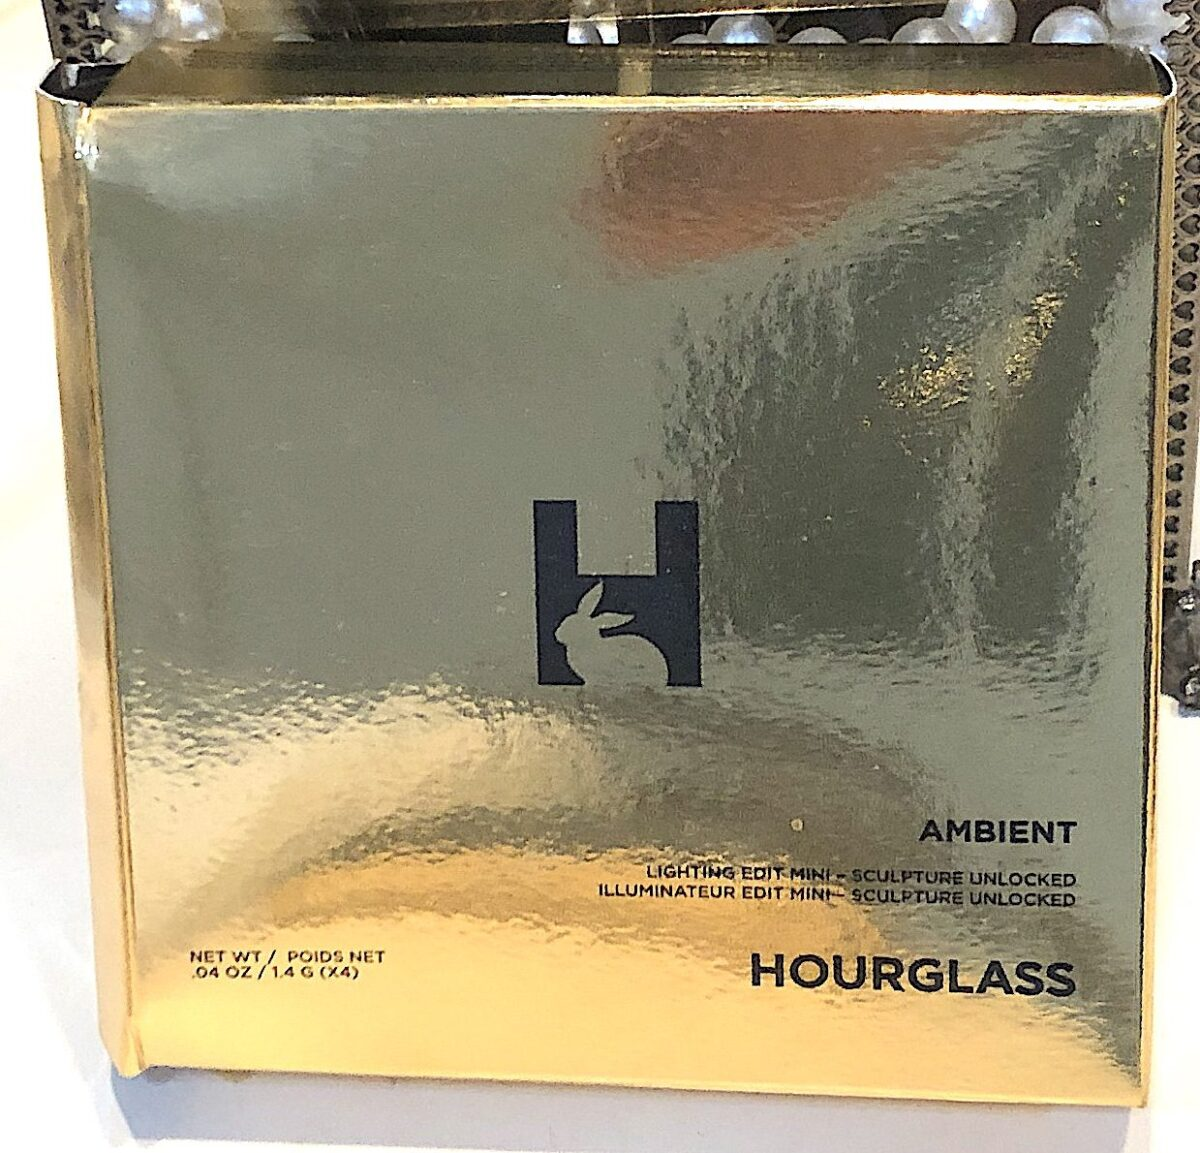 THE HOURGLASS SCULPTURE UNLOCKED MINI EDIT OUTER PACKAGING BOX